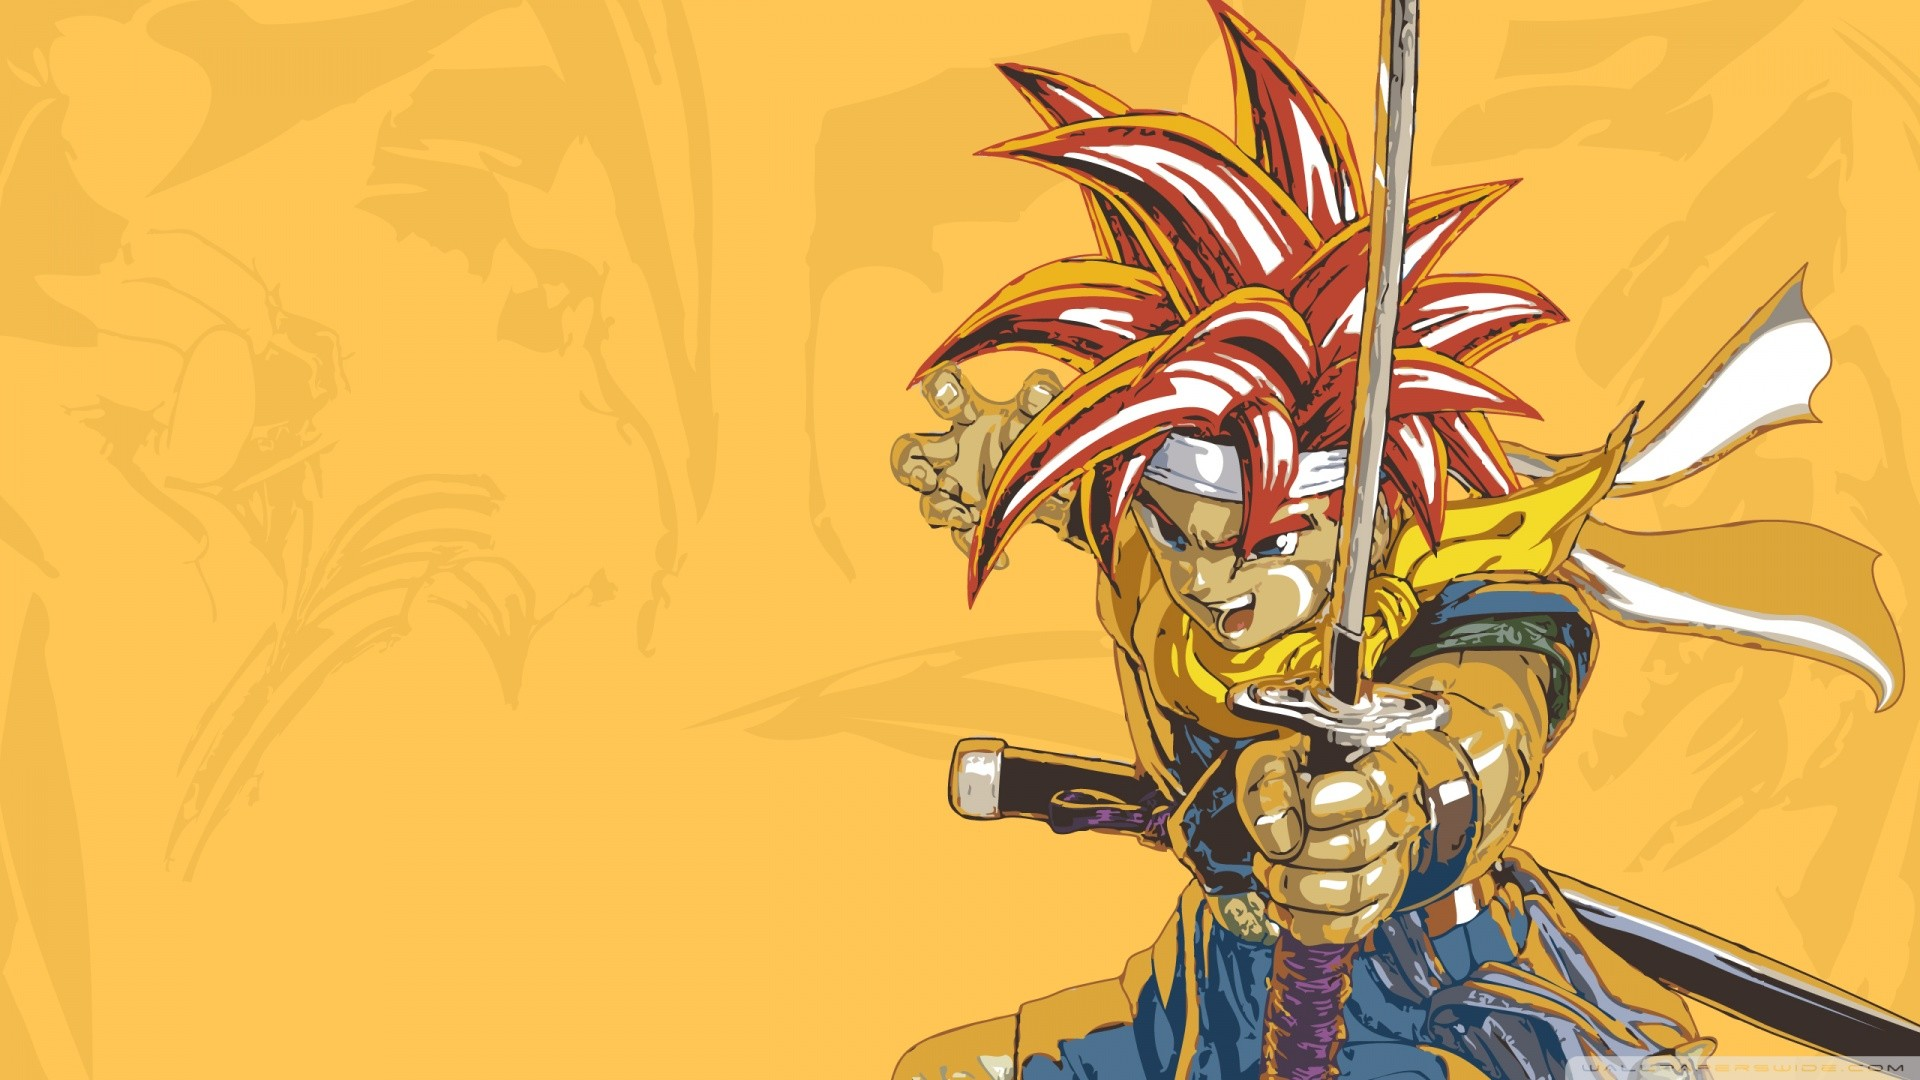 Res: 1920x1080, Chrono Trigger Wallpaper